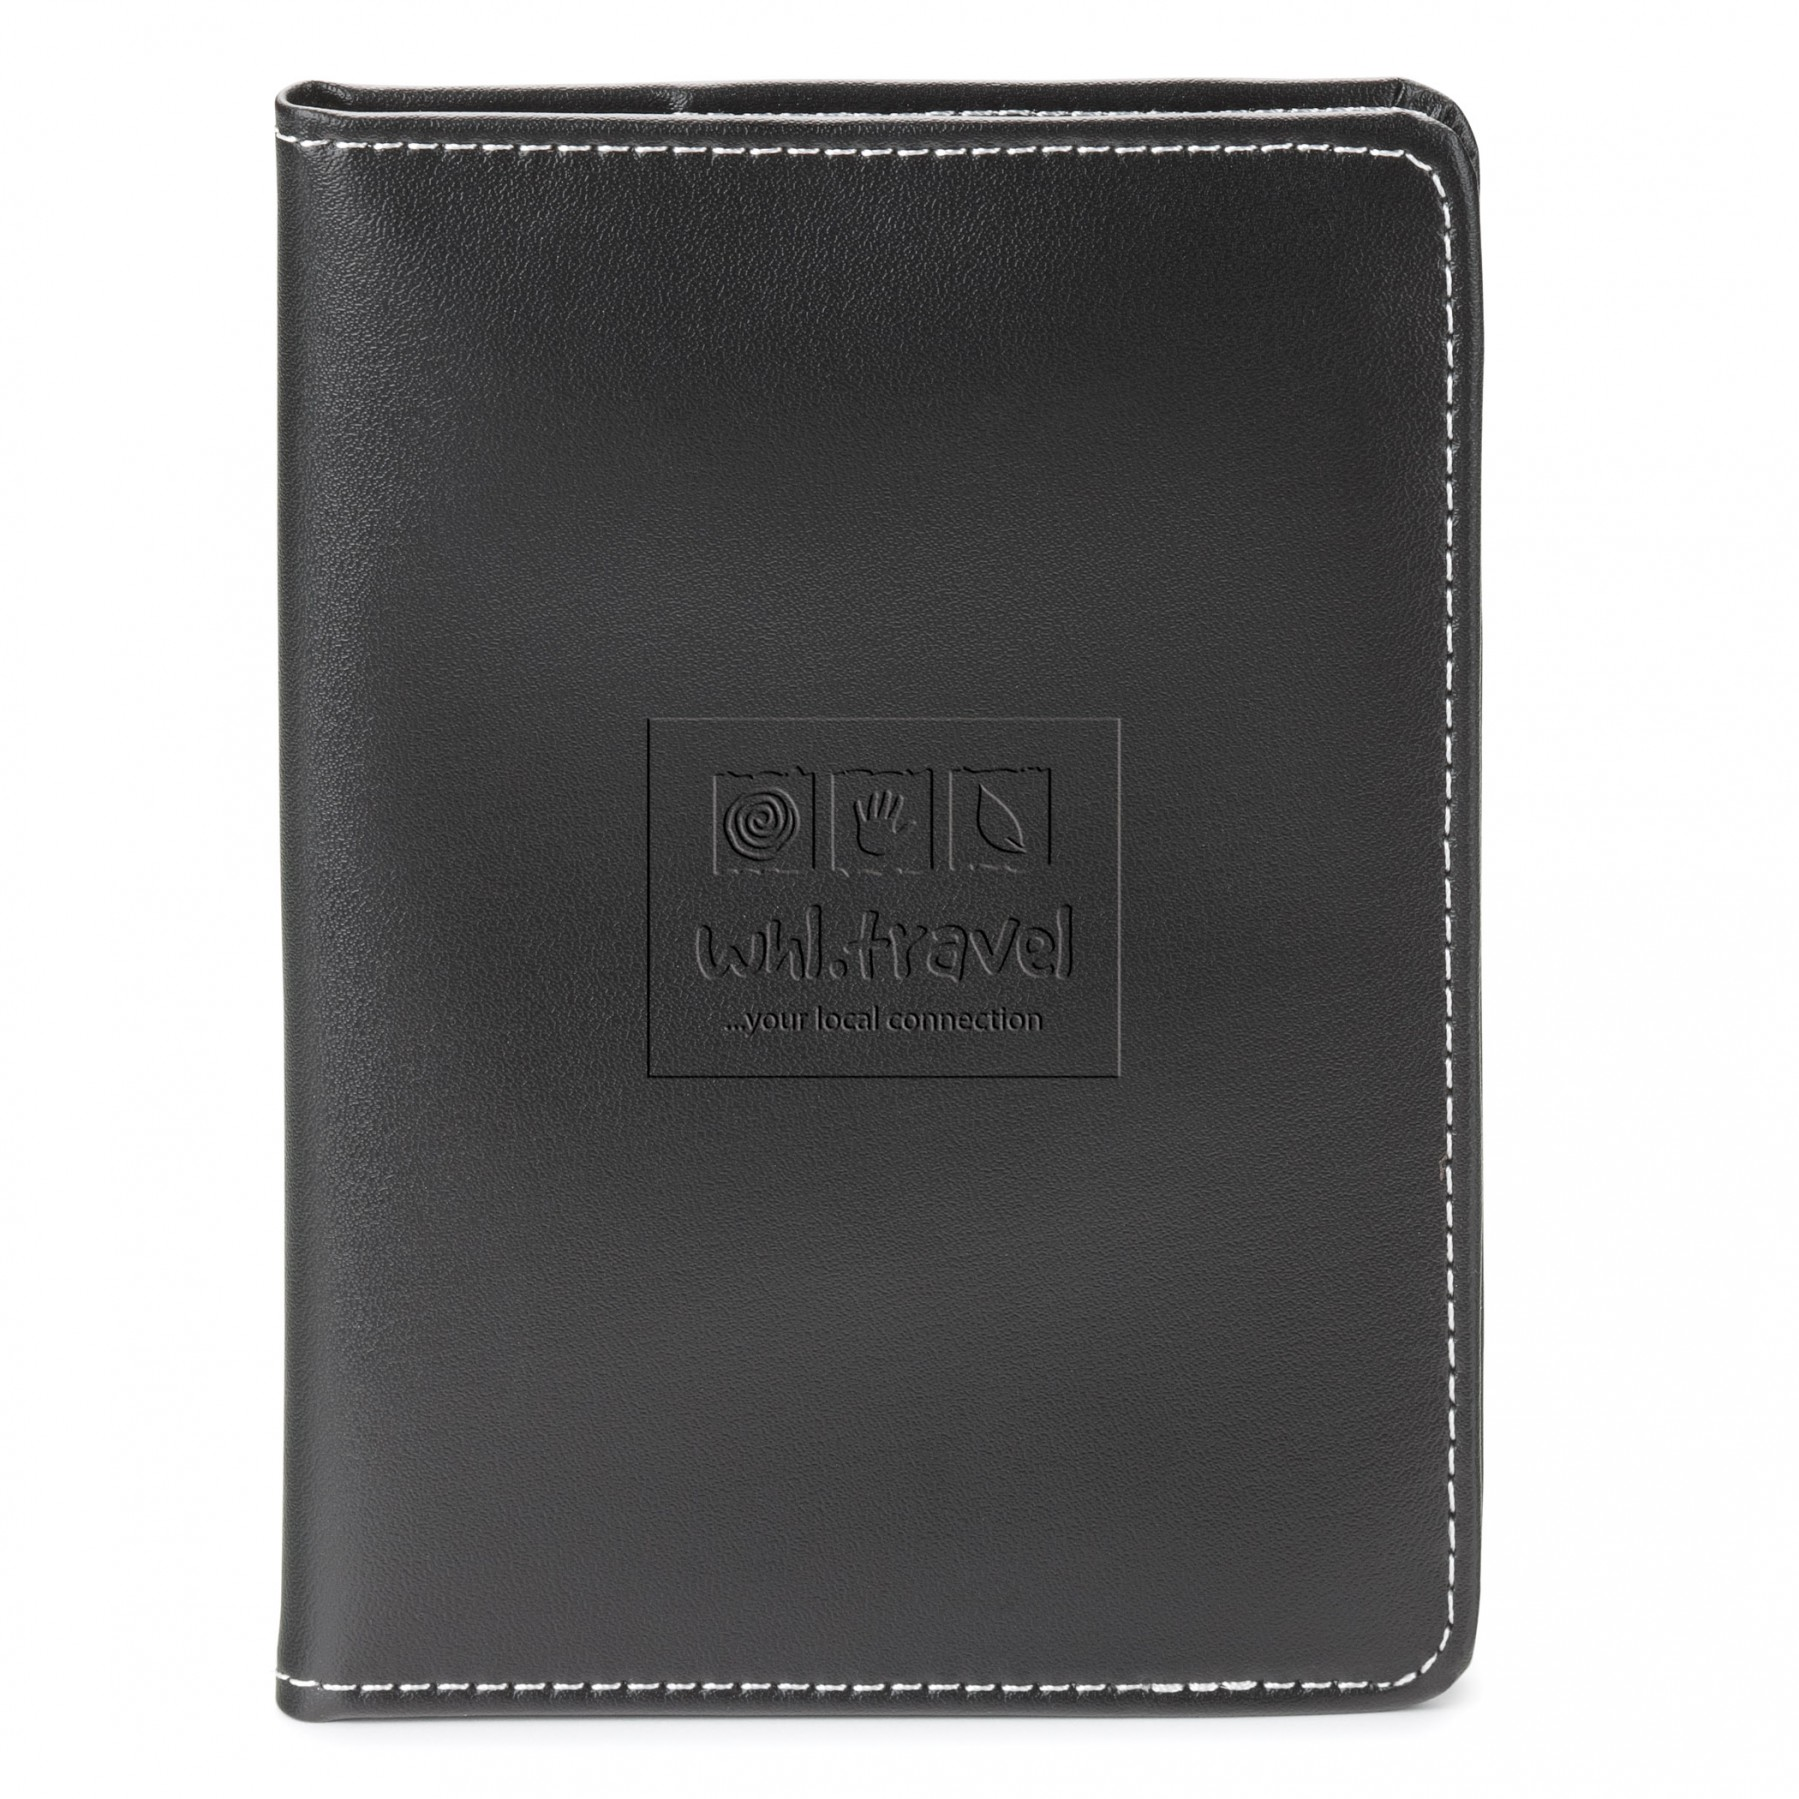 Bradford Passport Holder - Debossed Imprint (ST131)